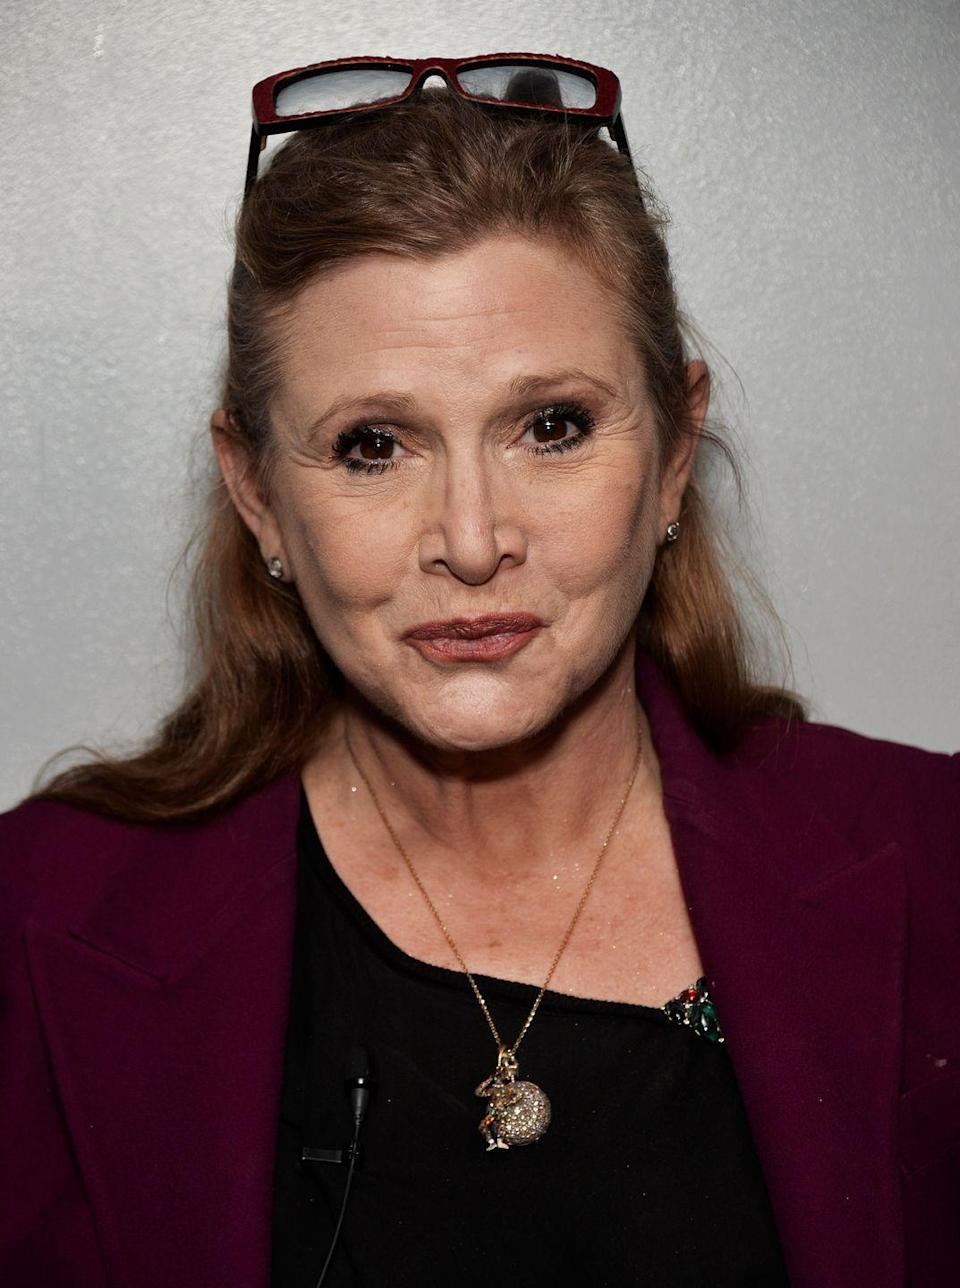 """<p>""""One of the things that baffles me (and there are quite a few) is how there can be so much lingering stigma with regards to mental illness, specifically bipolar disorder,"""" the <em>Star Wars </em>actress <a href=""""http://ew.com/news/2016/12/28/carrie-fisher-quotes-mental-health/"""" rel=""""nofollow noopener"""" target=""""_blank"""" data-ylk=""""slk:wrote"""" class=""""link rapid-noclick-resp"""">wrote</a> in her memoir <em><a href=""""https://www.amazon.com/Wishful-Drinking-Carrie-Fisher/dp/143915371X?tag=syn-yahoo-20&ascsubtag=%5Bartid%7C2140.g.36366494%5Bsrc%7Cyahoo-us"""" rel=""""nofollow noopener"""" target=""""_blank"""" data-ylk=""""slk:Wishful Drinking"""" class=""""link rapid-noclick-resp"""">Wishful Drinking</a>.</em> """"In my opinion, living with manic depression takes a tremendous amount of balls.""""</p>"""